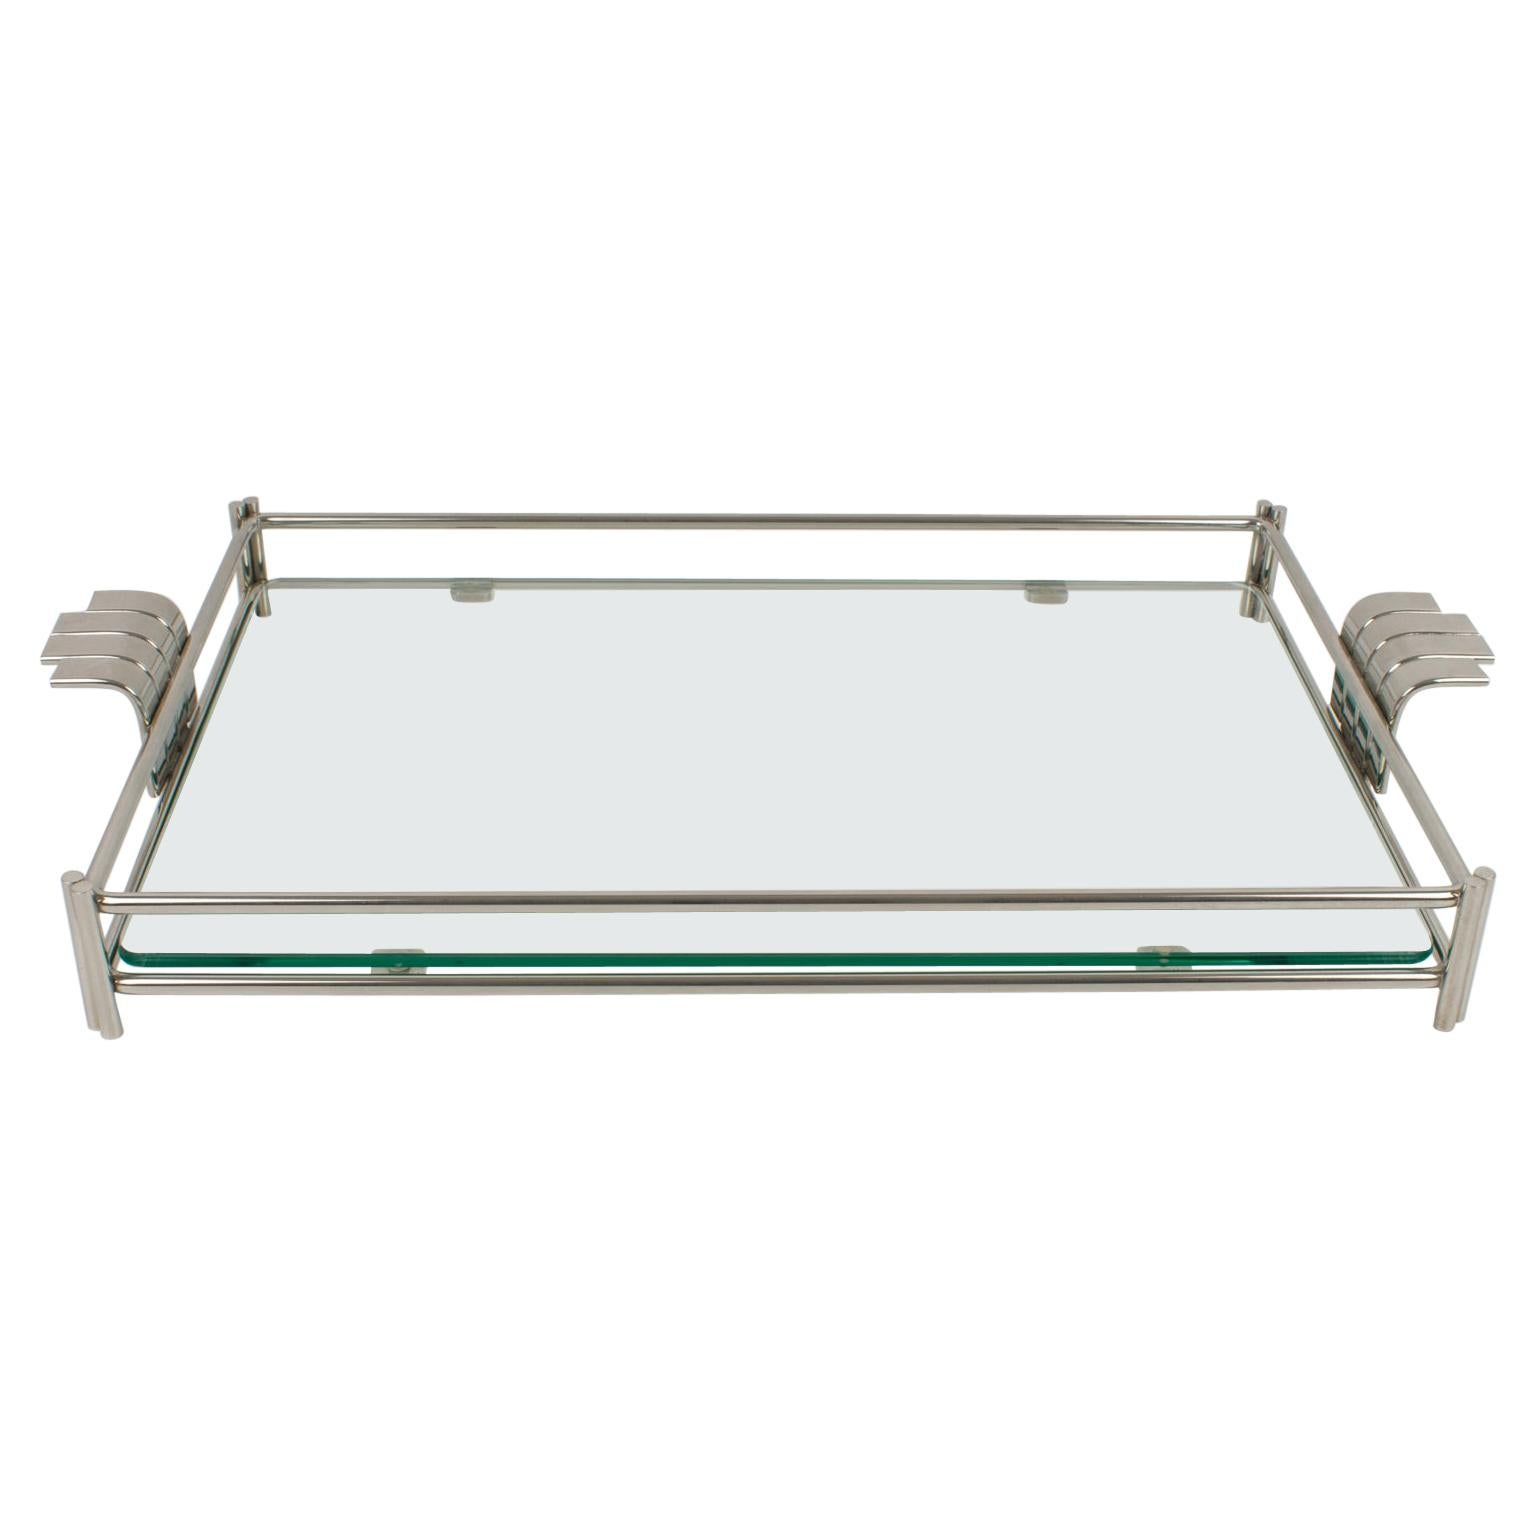 Christian Dior Barware Silvered Metal and Glass Tray